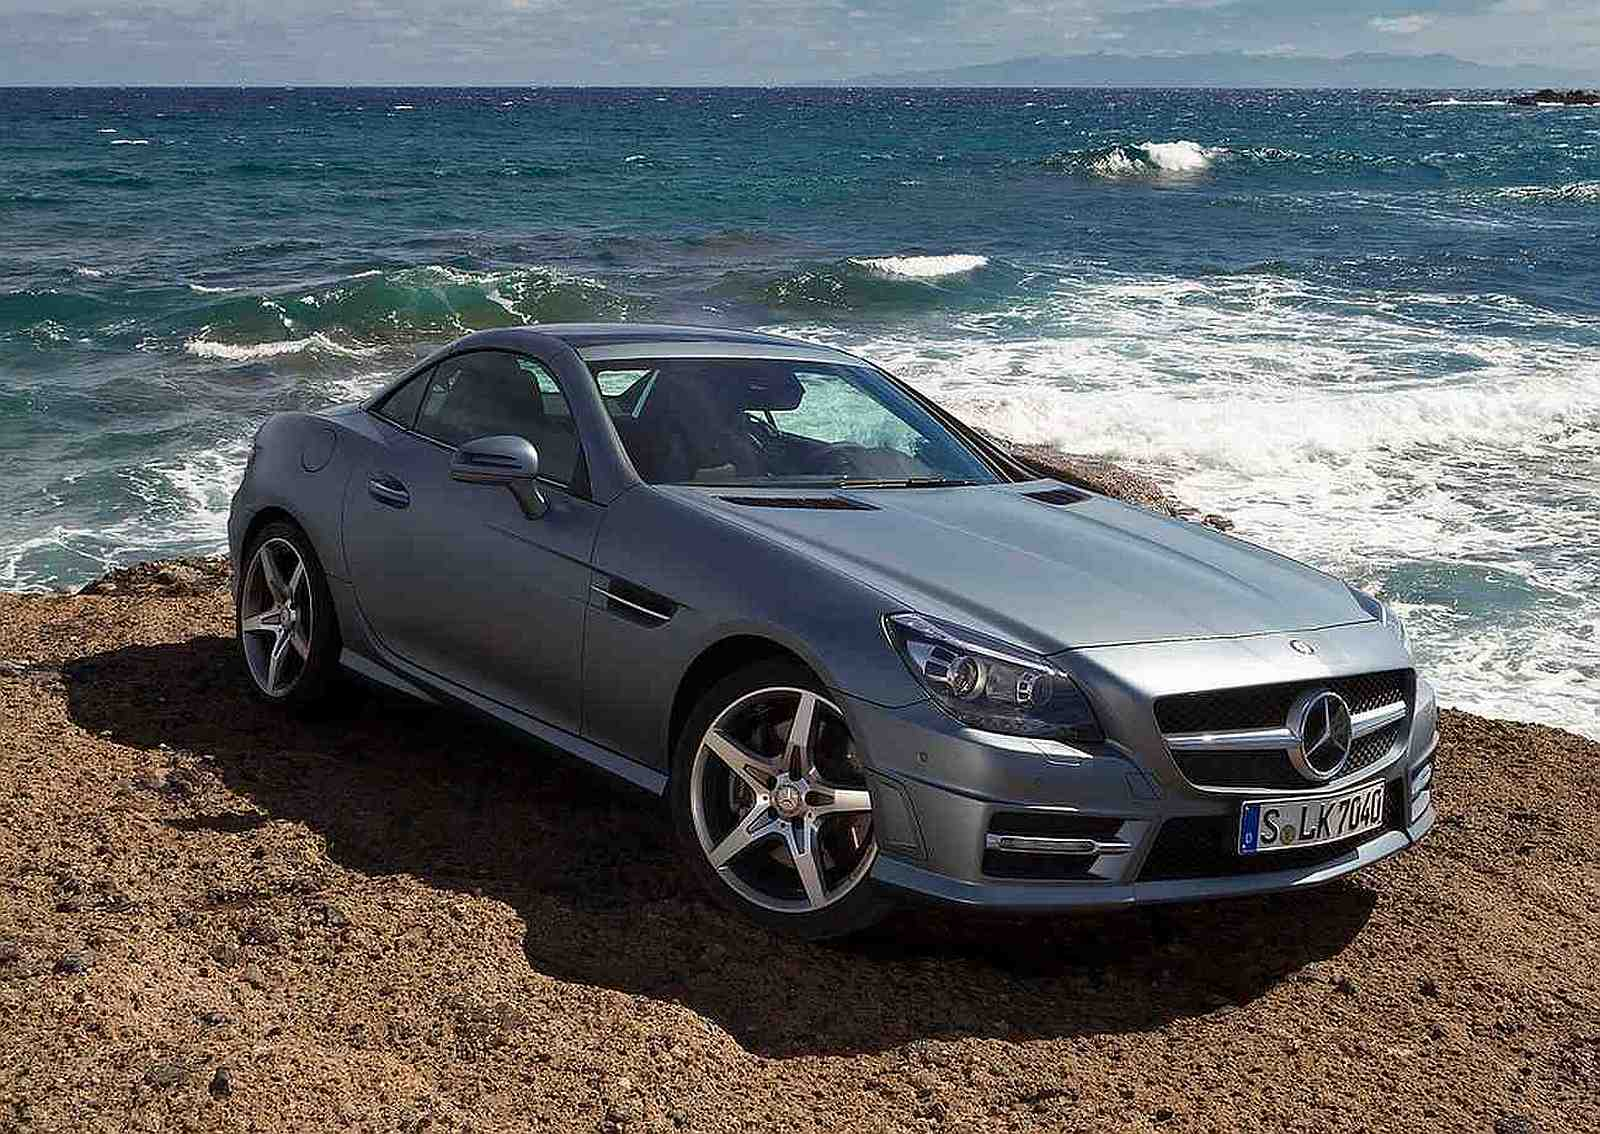 all car reviews 02 2012 mercedes benz slk350 the answer to stylish sedans today. Black Bedroom Furniture Sets. Home Design Ideas